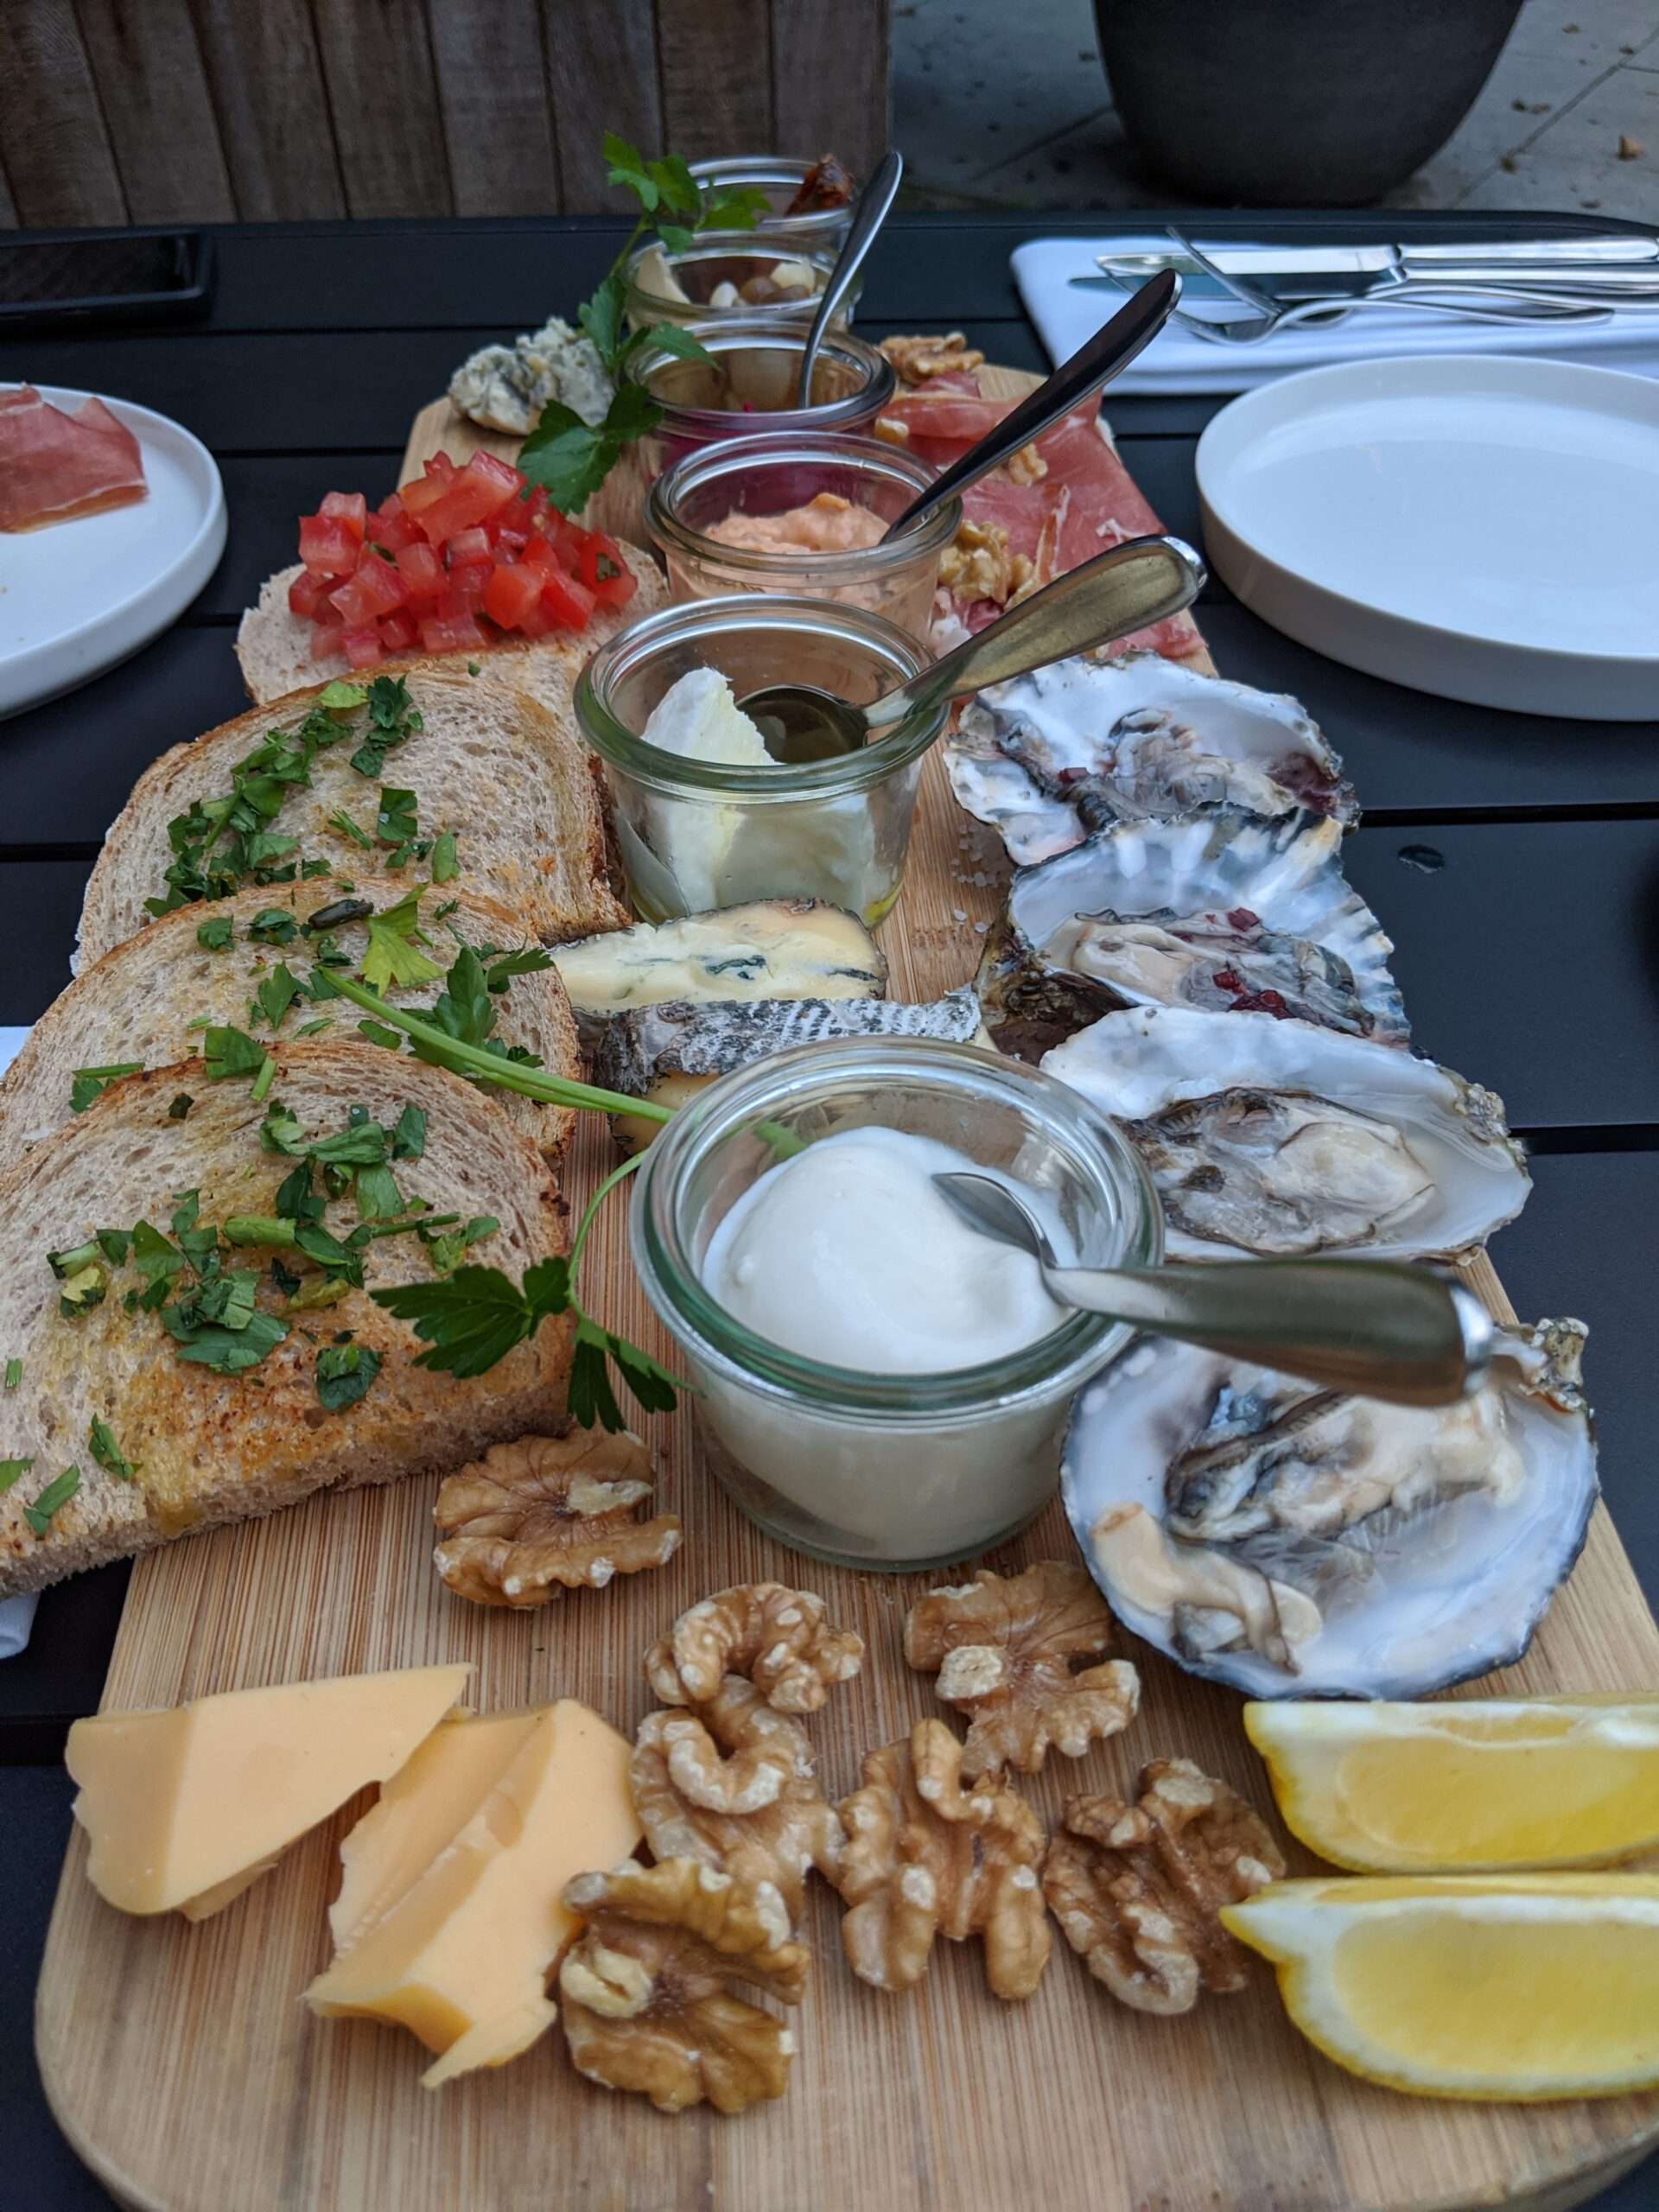 rectangular wooden platter with bruschetta topped with tomato and herbs, plus pieces of cheese, nuts, oysters and pot of sauce at Kazerne